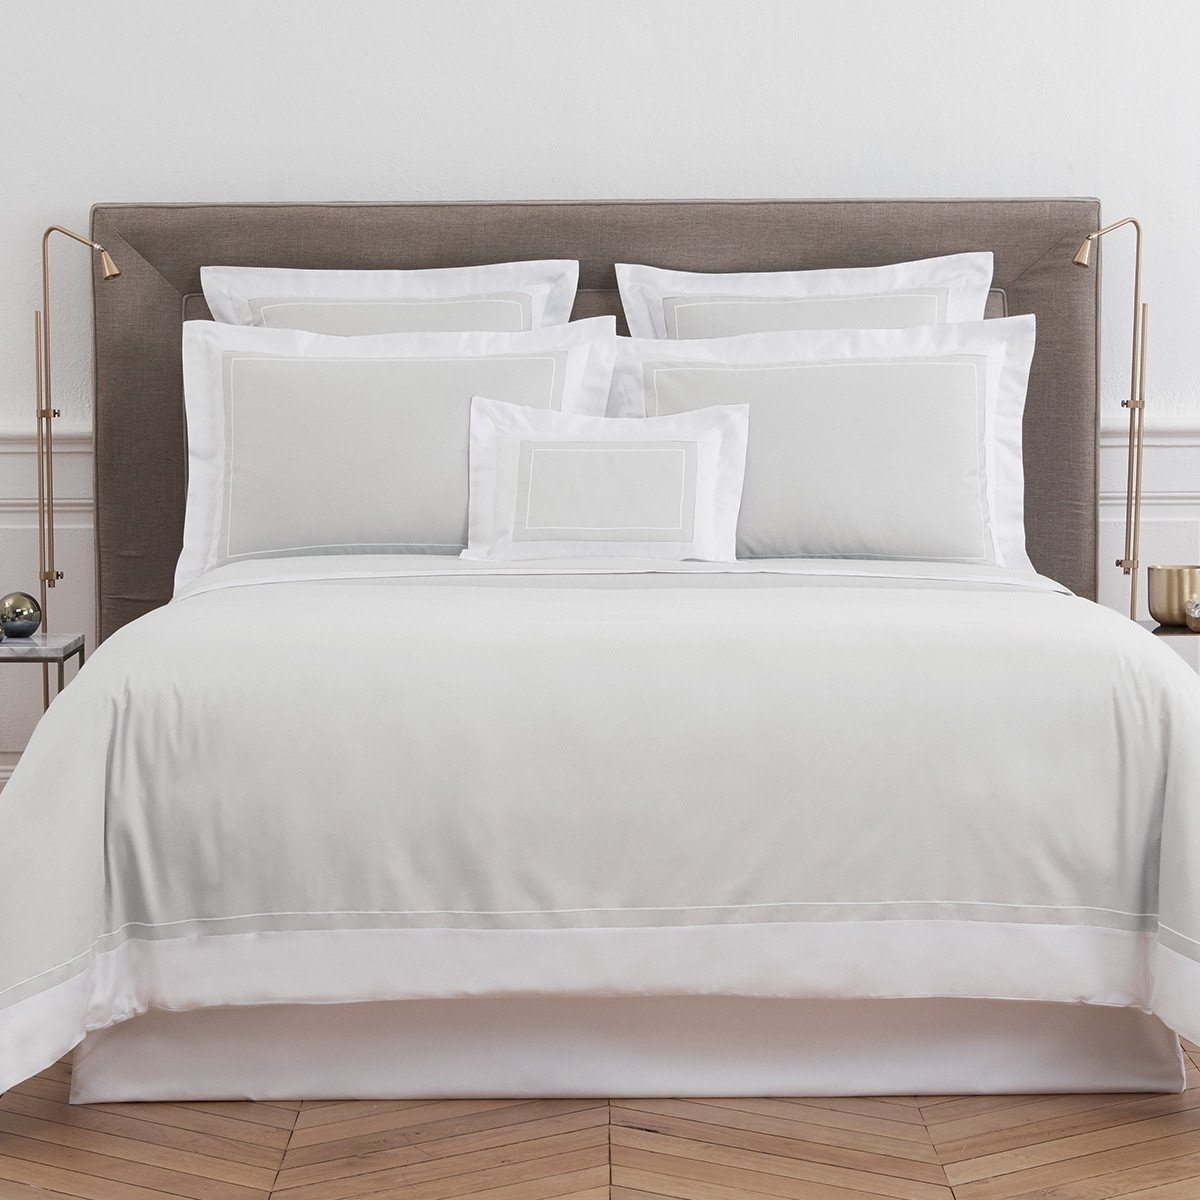 Ucetia Silver Bedding Collection by Yves Delorme | Fig Linens - Light gray bedding, cotton